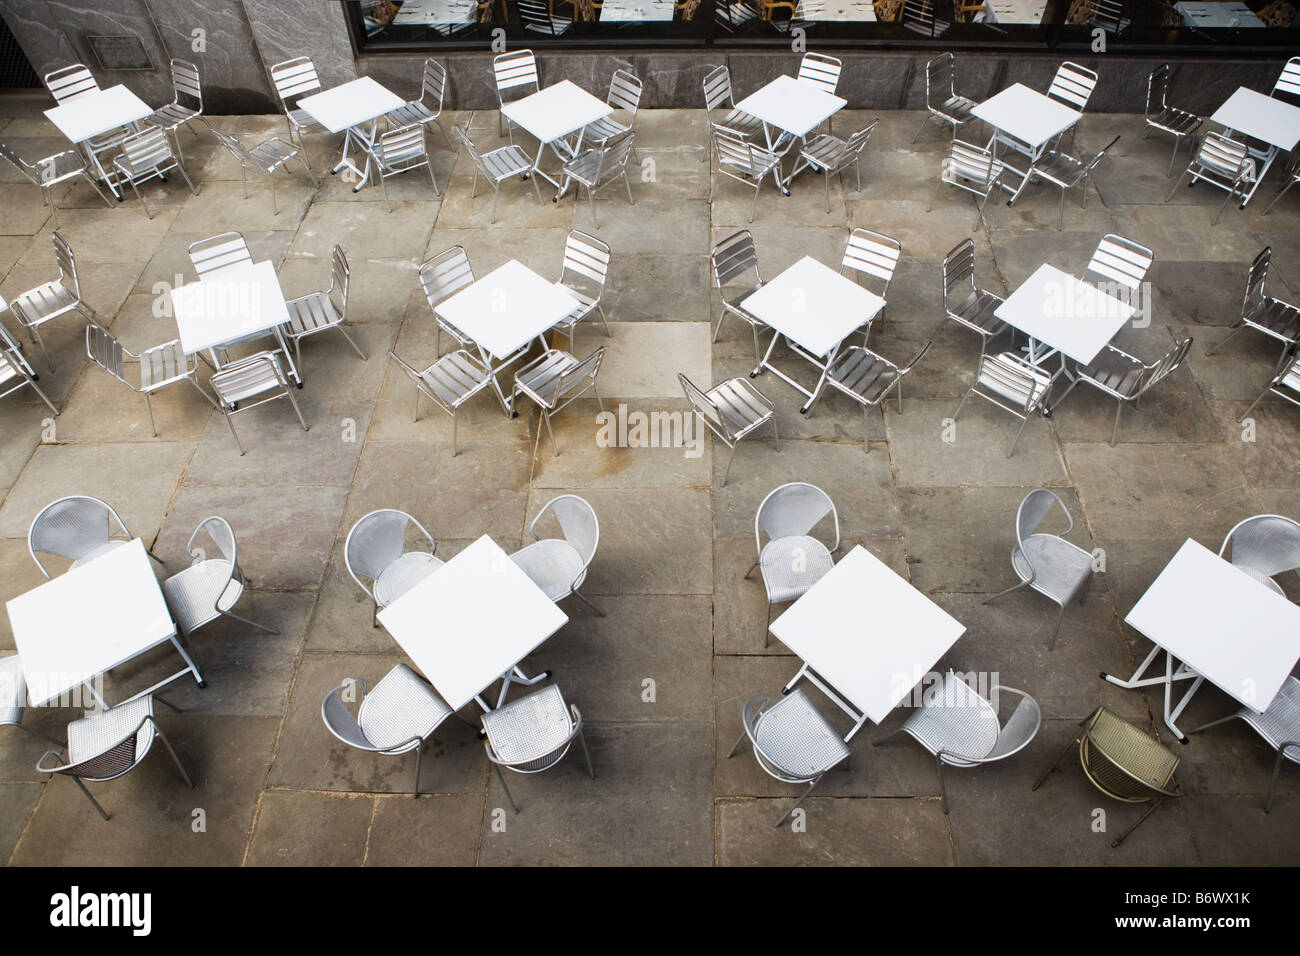 Cafe chairs and tables - Stock Image